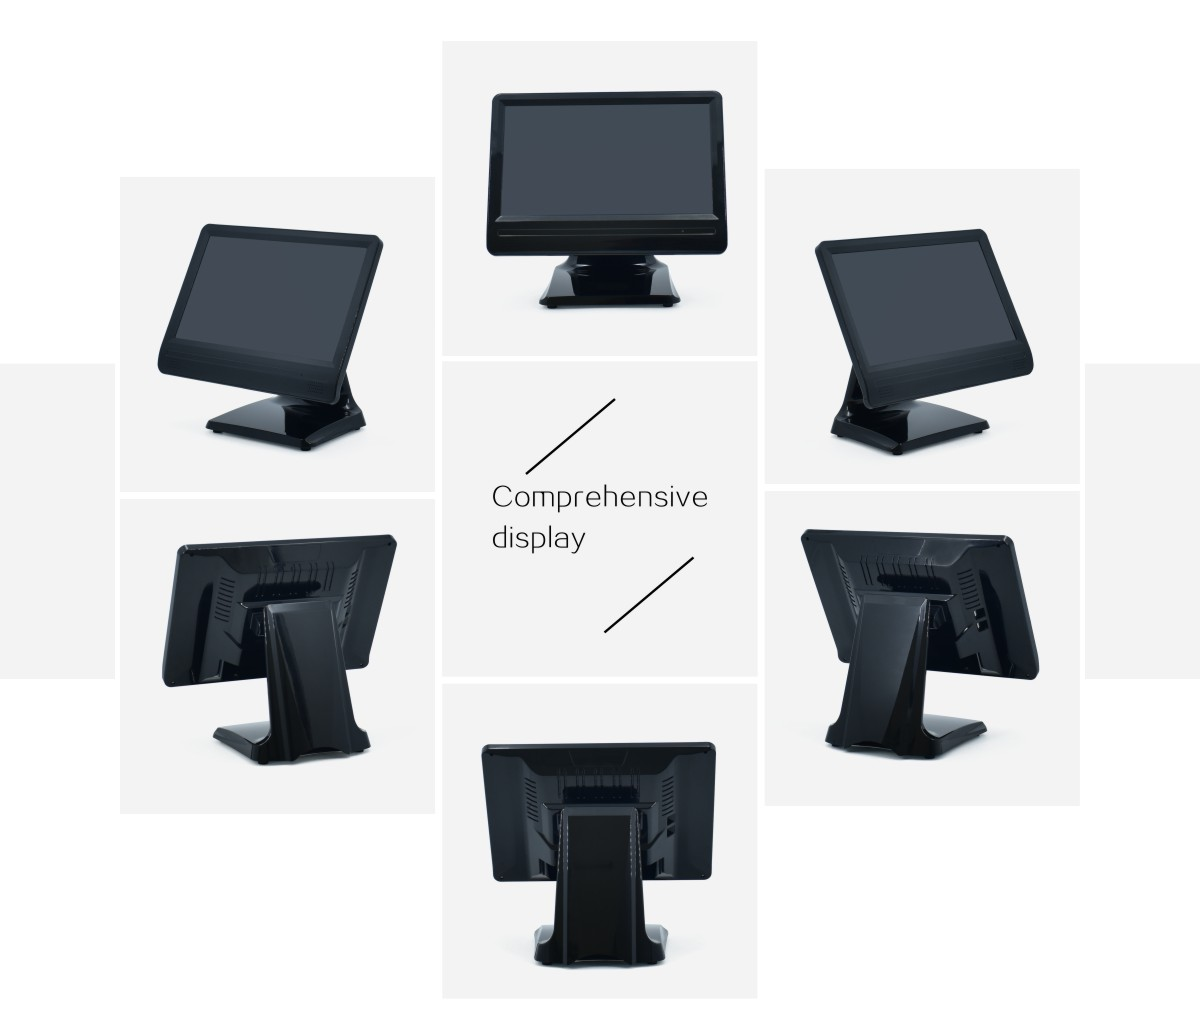 Capacitive Touch epos system